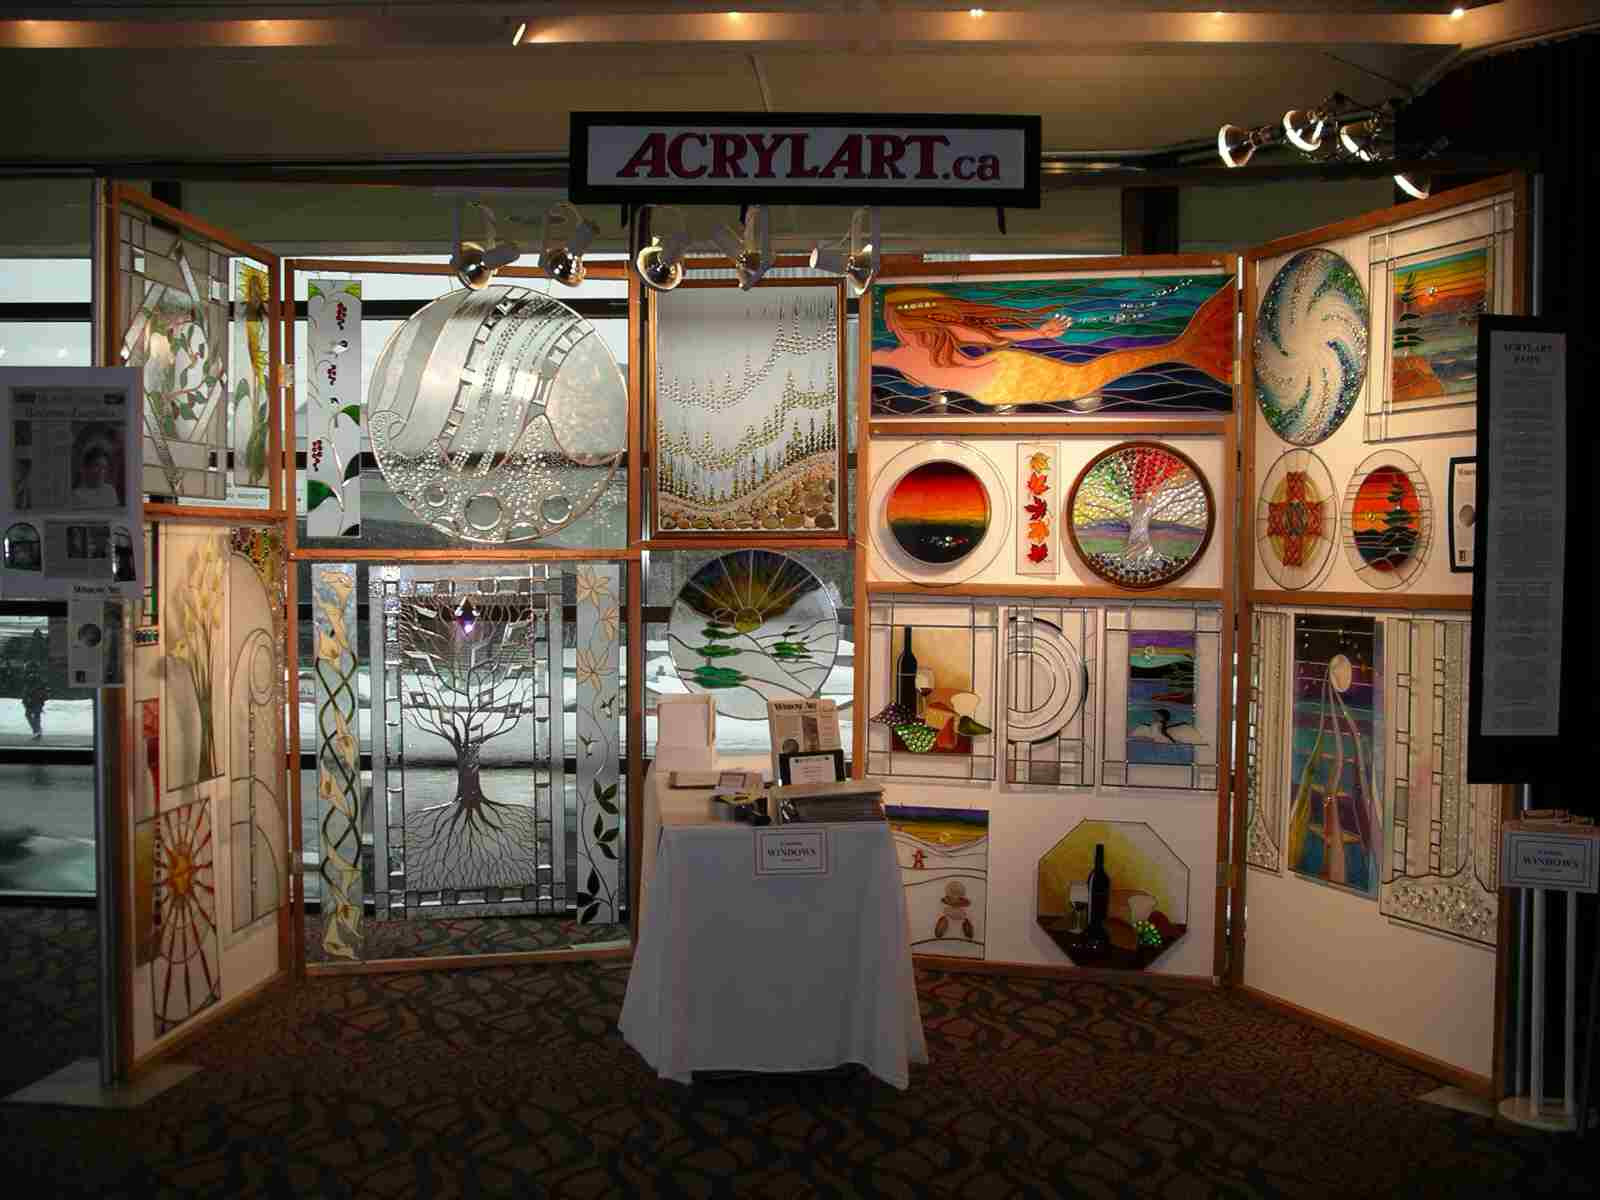 Art Gallery of Lynette Chubb